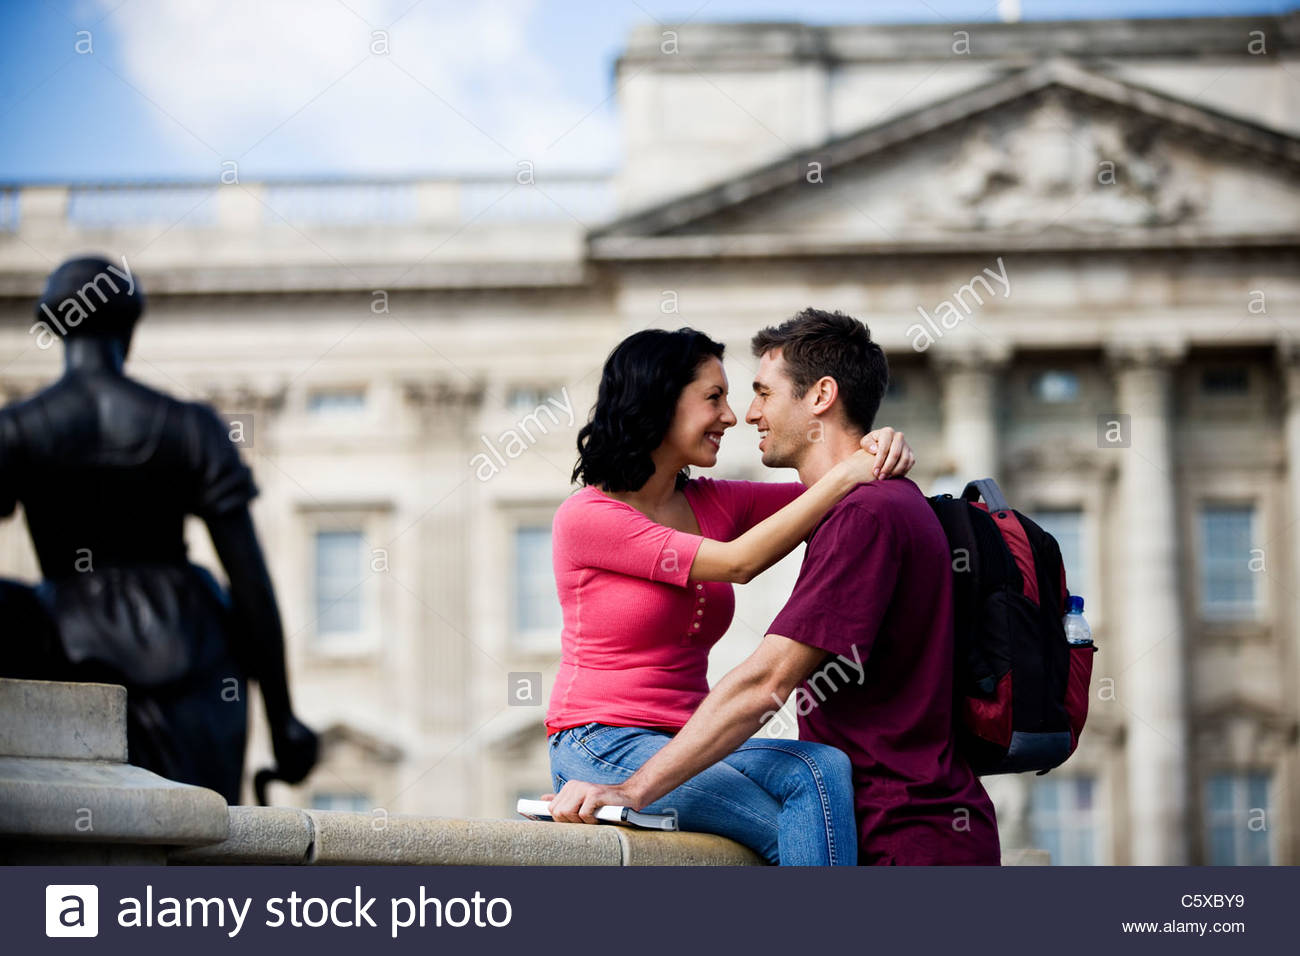 A young couple in front of Buckingham Palace, looking at each other - Stock Image